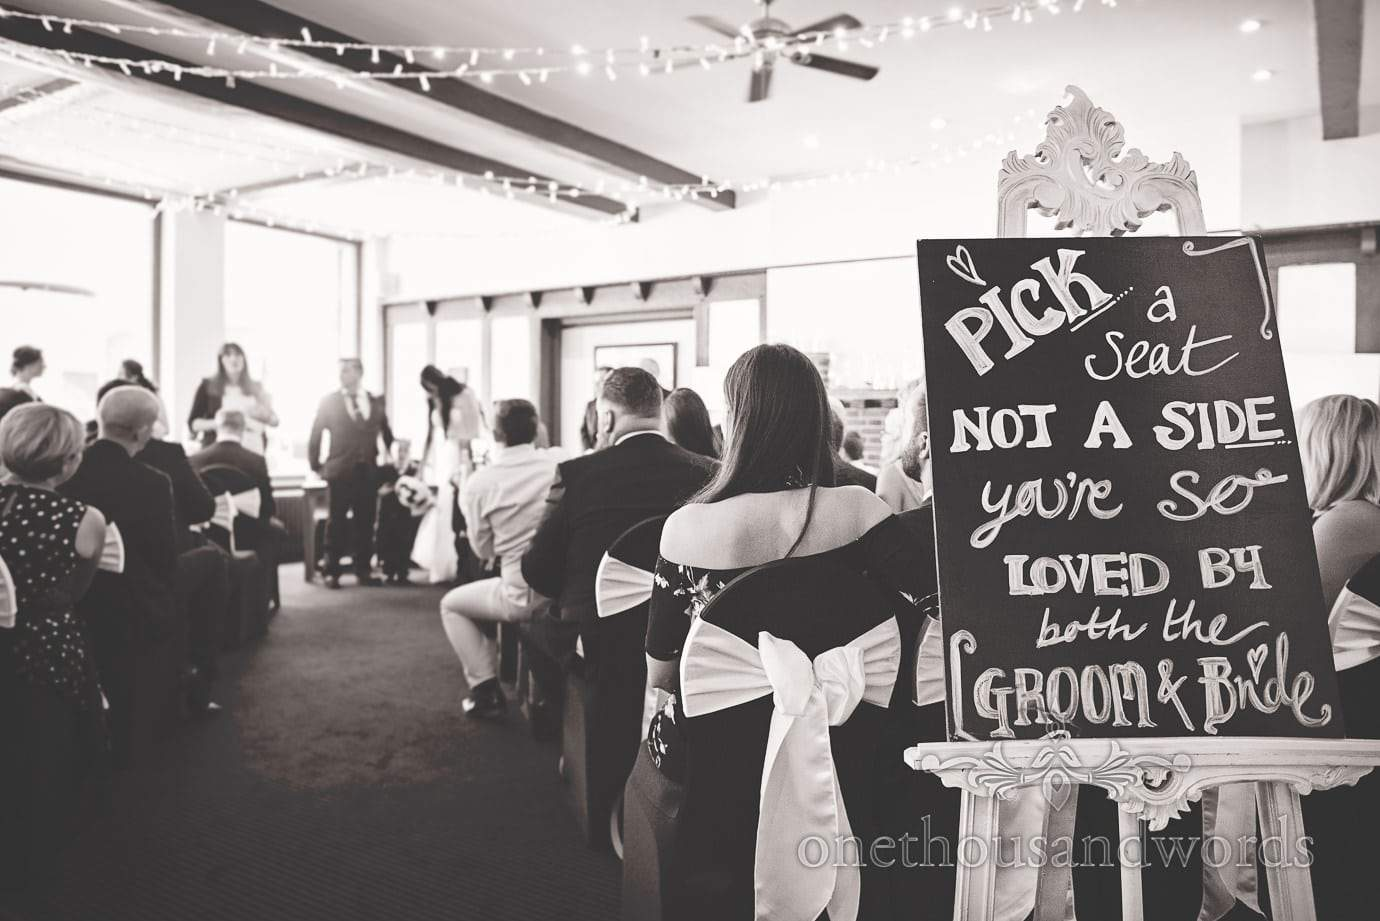 Pick a seat not a side you're so loved by the groom and bride sign